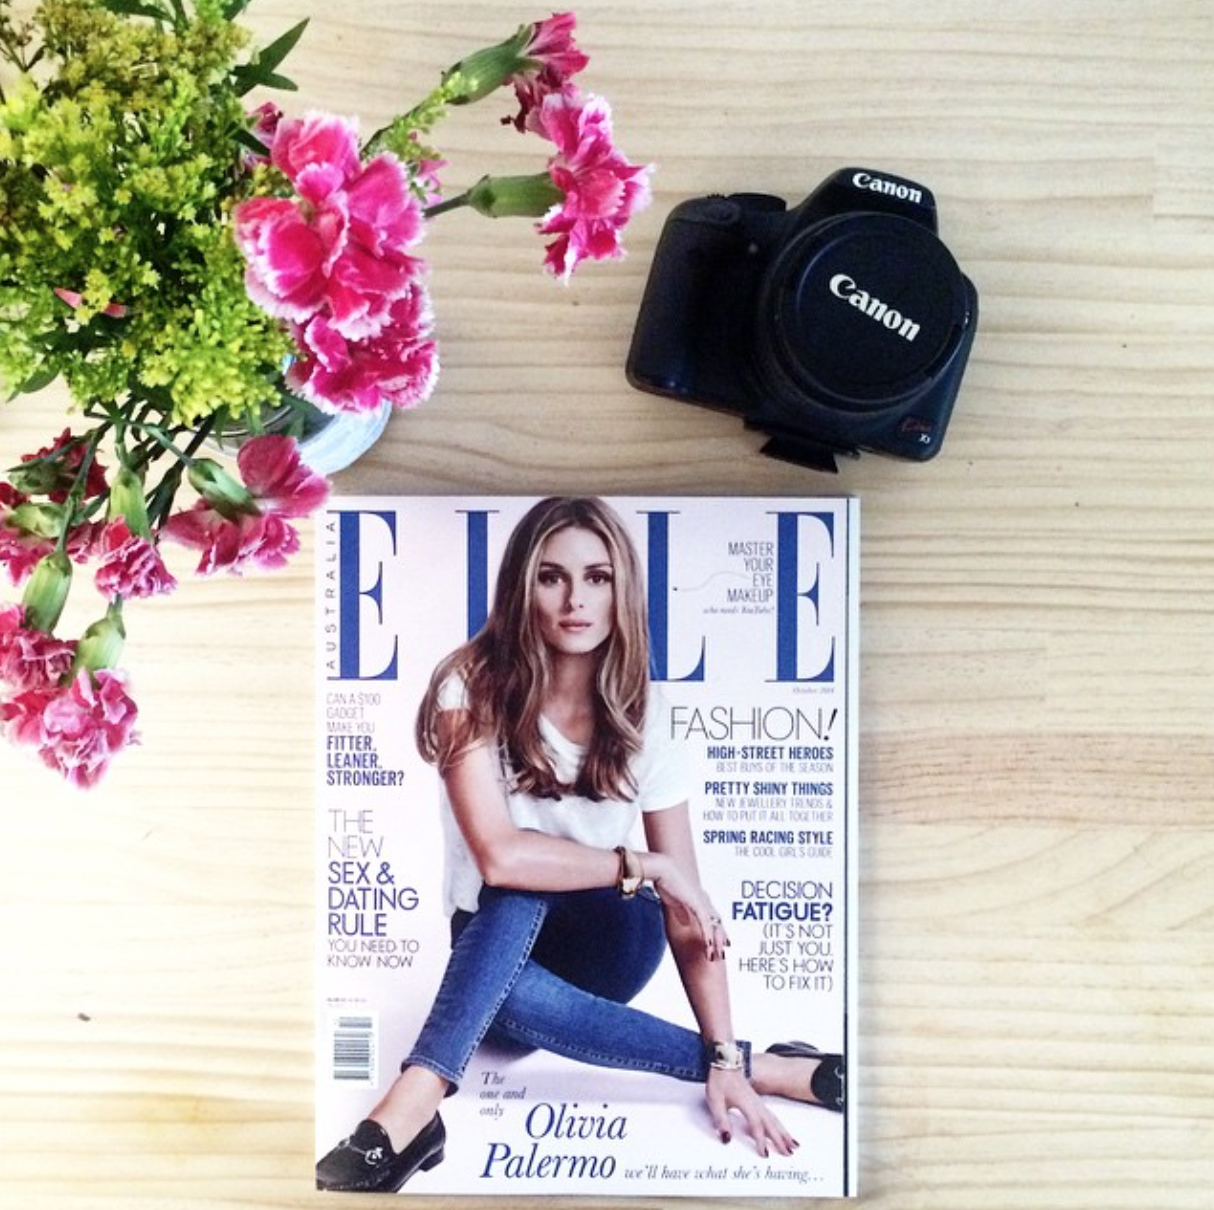 Swooning over the always chic, Olivia Palermo on the cover of this months  Elle.